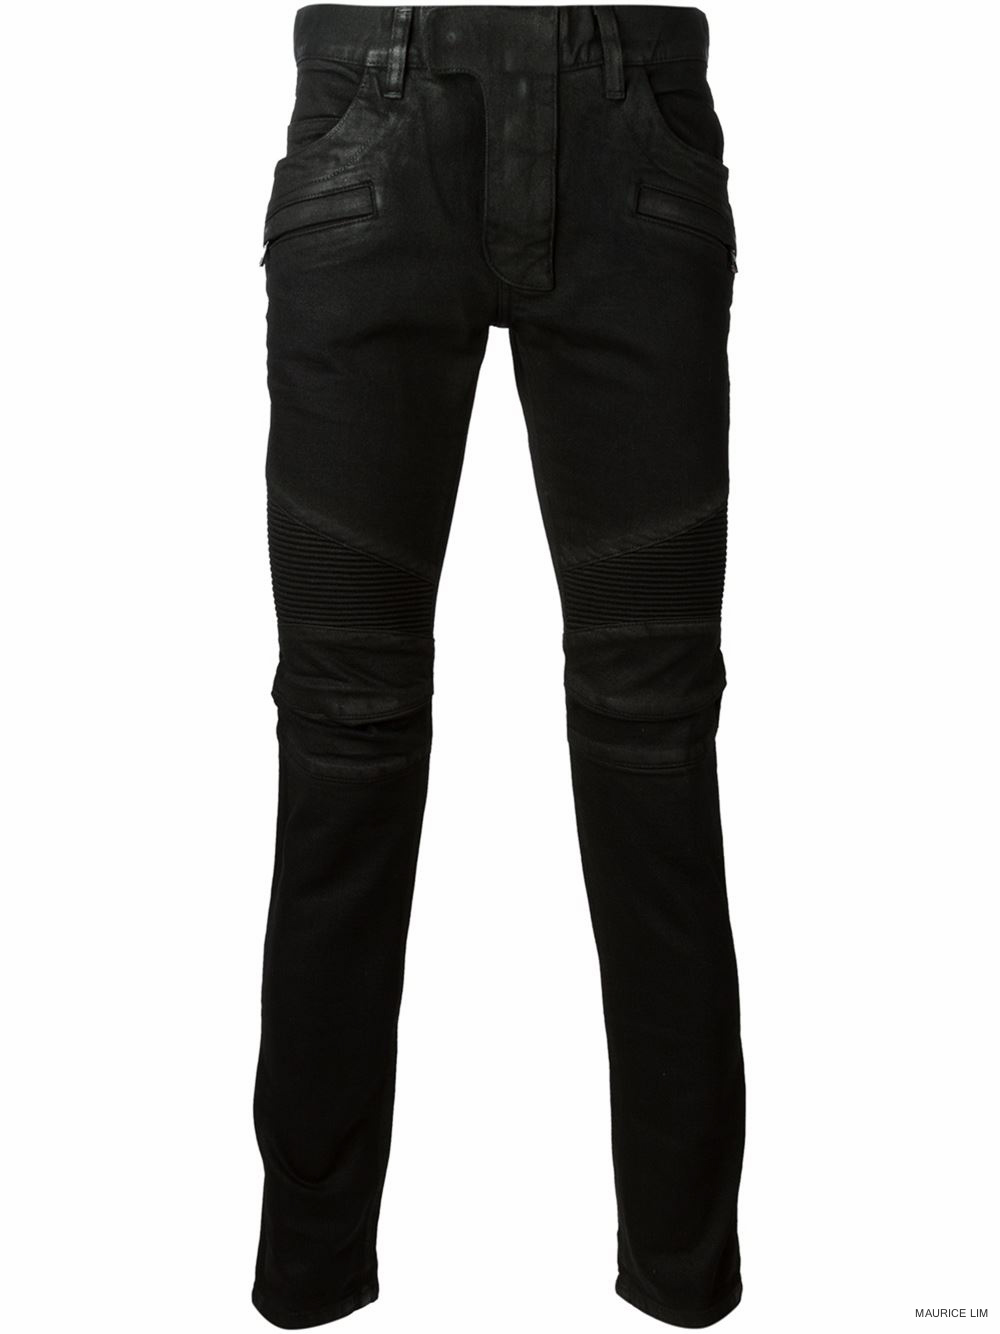 Balmain Spring Summer 2015 Biker Jeans and Trousers Size Guide